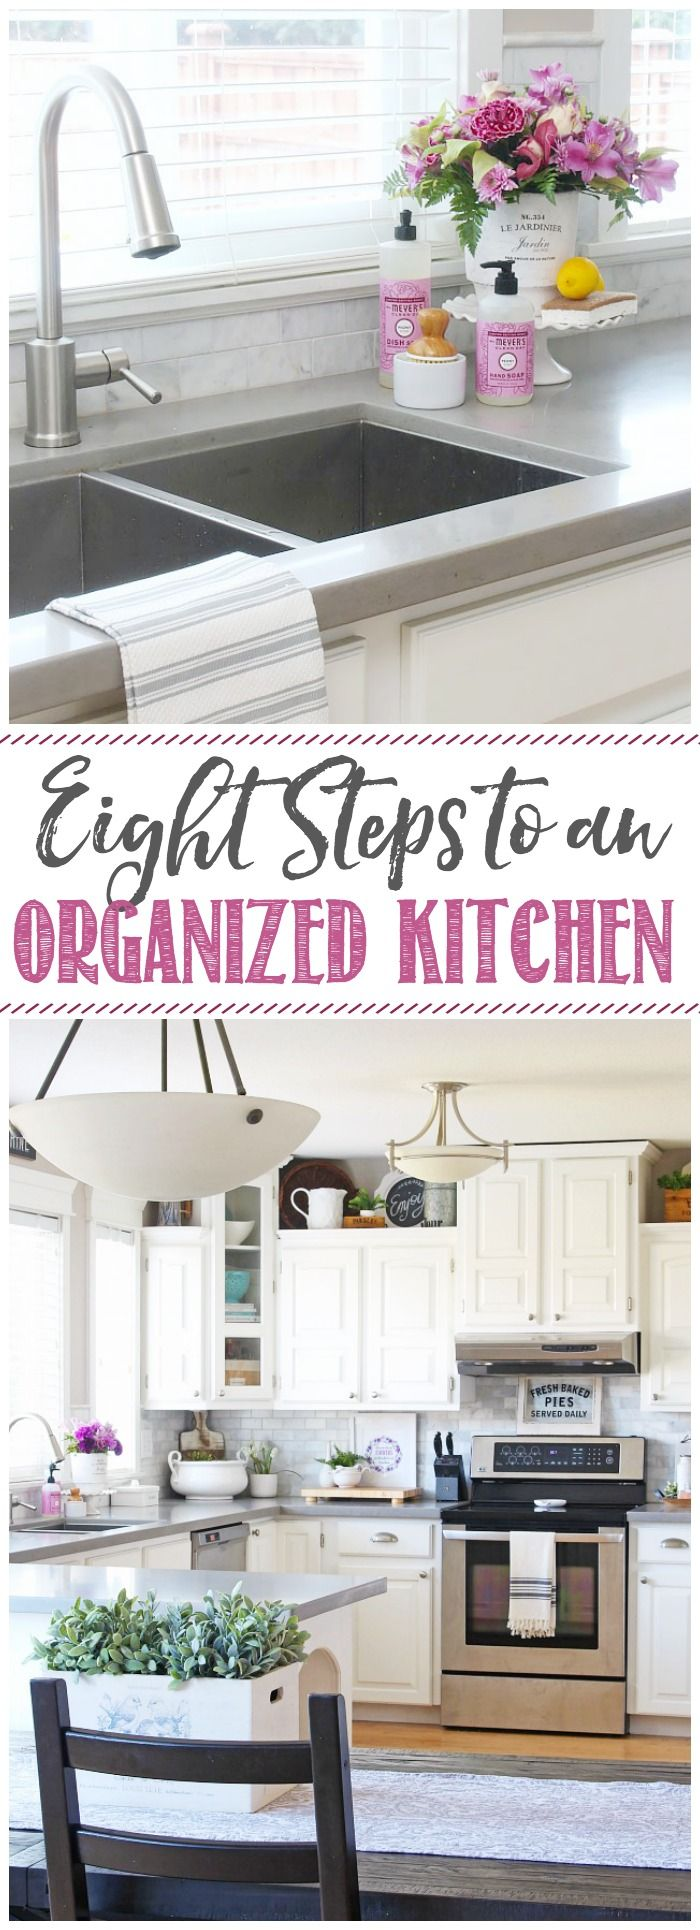 233 best decorate :: kitchen images on Pinterest | For the home ...